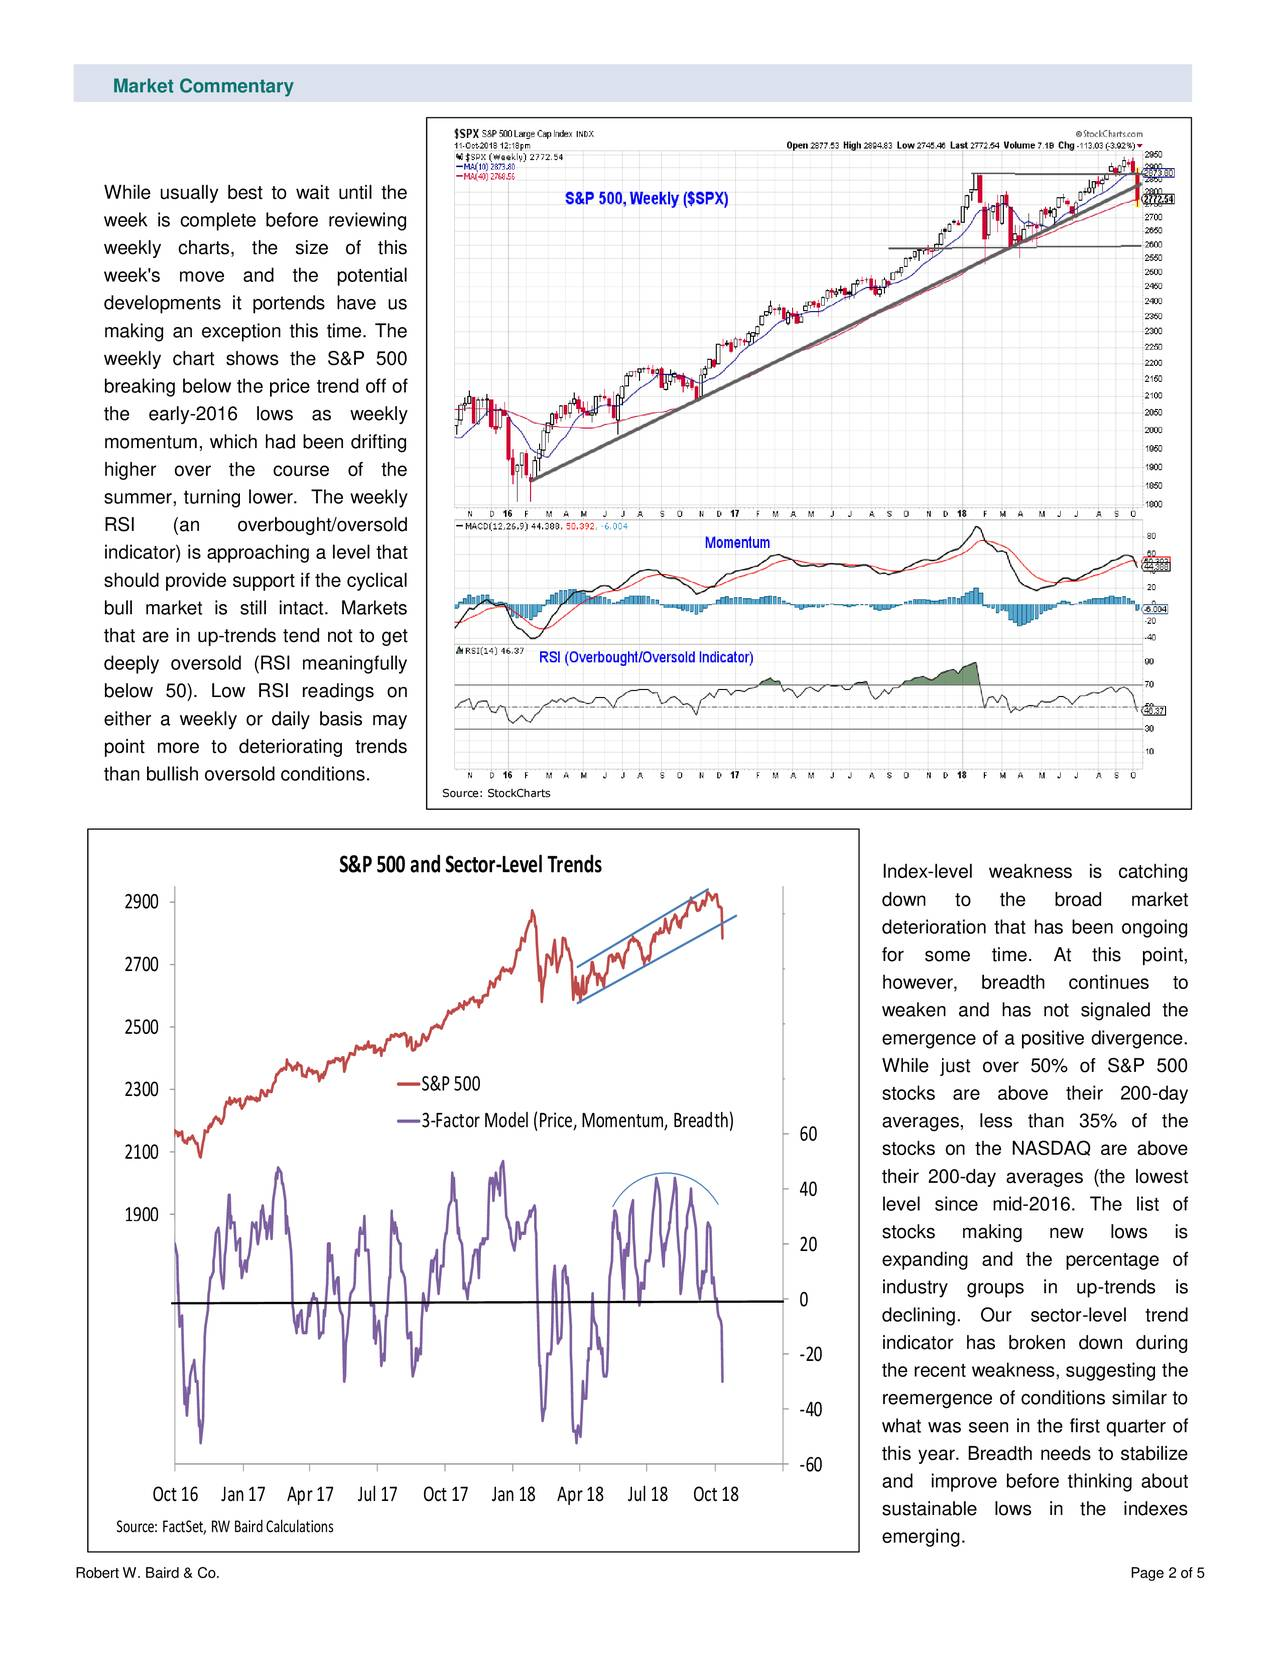 While usually best to wait until the week is complete before reviewing weekly charts, the size of this week's move and the potential developments it portends have us making an exception this time. The weekly chart shows the S&P 500 breaking below the price trend off of the early-2016 lows as weekly momentum, which had been drifting higher over the course of the summer, turning lower. The weekly RSI (an overbought/oversold indicator) is approaching a level that should provide support if the cyclical bull market is still intact. Markets that are in up-trends tend not to get deeply oversold (RSI meaningfully below 50). Low RSI readings on either a weekly or daily basis may point more to deteriorating trends than bullish oversold conditions. Source: StockCharts S&P 500 and Se -ctvel Trends Index-level weakness is catching down to the broad market 2900 140 deterioration that has been ongoing for some time. At this point, 2700 120 however, breadth continues to weaken and has not signaled the 2500 100 emergence of a positive divergence. While just over 50% of S&P 500 2300 S&P 500 80 stocks are above their 200-day 3-Factor Model (Price, Momentum, Breadth) averages, less than 35% of the 2100 60 stocks on the NASDAQ are above 40 their 200-day averages (the lowest level since mid-2016. The list of 1900 20 stocks making new lows is expanding and the percentage of 1700 industry groups in up-trends is 0 declining. Our sector-level trend 1500 indicator has broken down during -20 the recent weakness, suggesting the 1300 reemergence of conditions similar to -40 what was seen in the first quarter of this year. Breadth needs to stabilize 1100 -60 and improve before thinking about Oct 16 Jan 17 Apr 17 Jul 17 Oct 17 Jan 18 Apr 18 Jul 18 Oct 18 sustainable lows in the indexes Source: FactSet, RW Baird Calculations emerging. Robert W. Baird & Co. Page 2 of 5